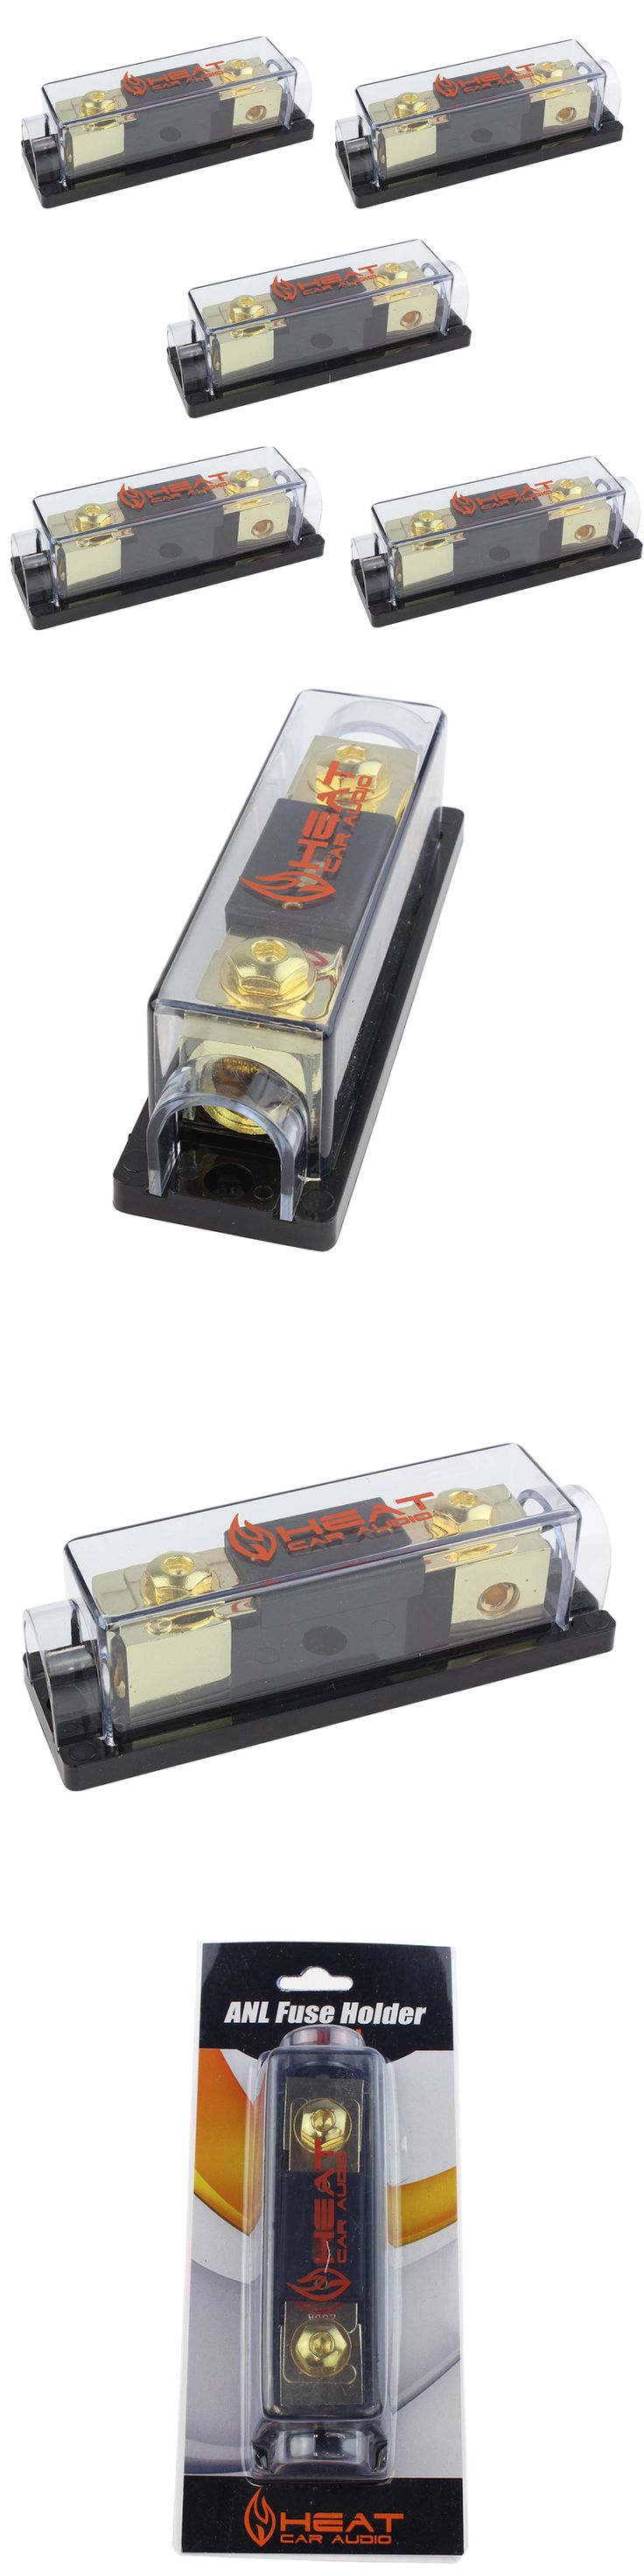 Fuses and Fuse Holders: 250 Amp Anl Fuse Holder Inline Block For Car Amp Installation Anlfh250 (5 Pack) -> BUY IT NOW ONLY: $31.9 on eBay!